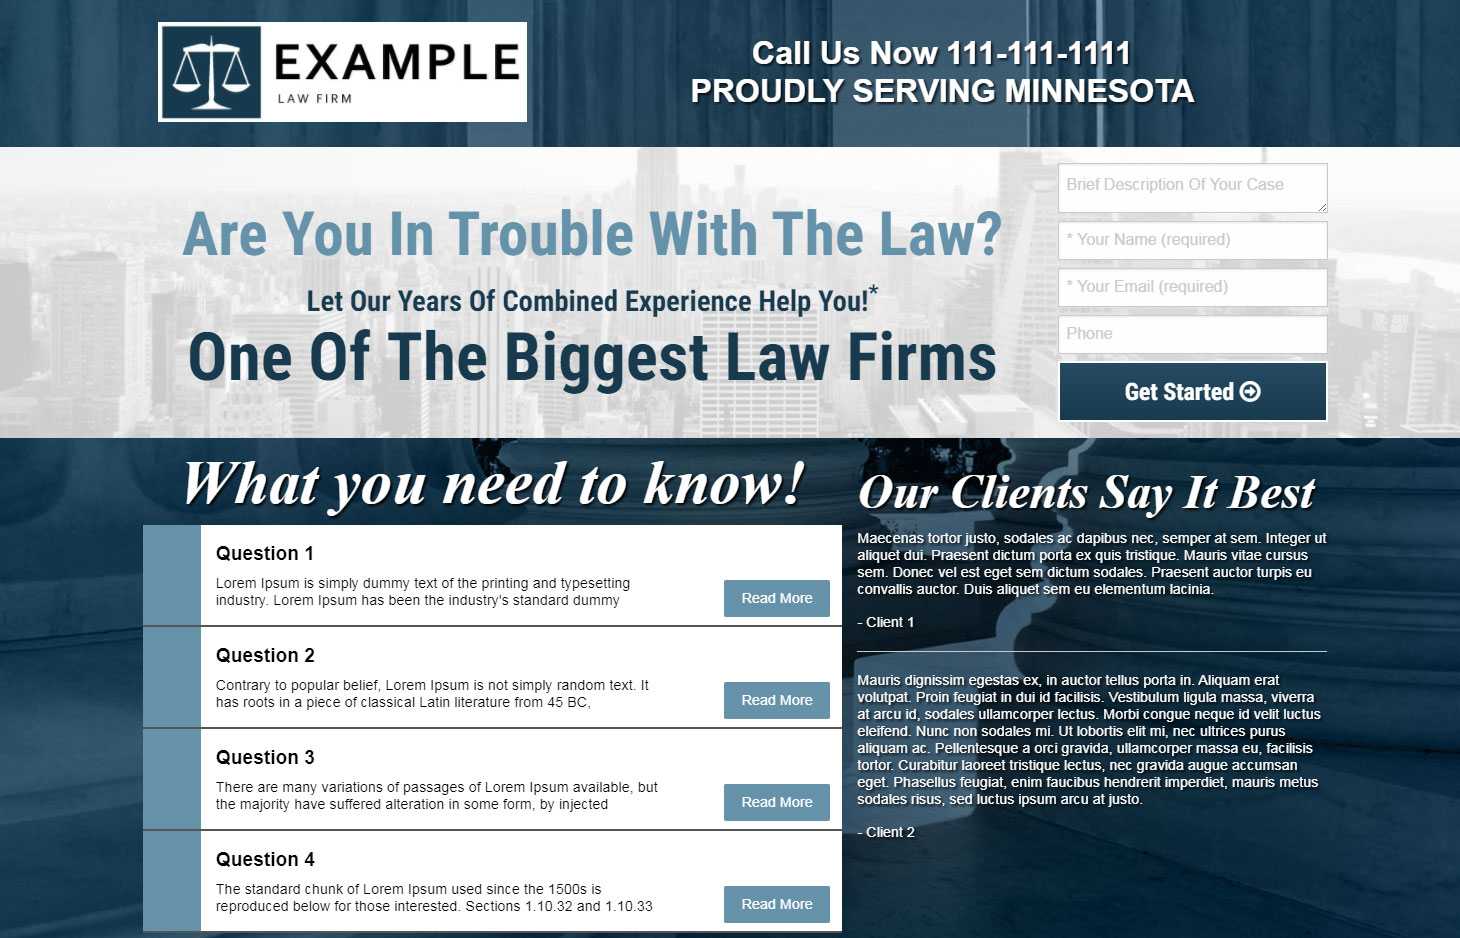 Example law firm landing page